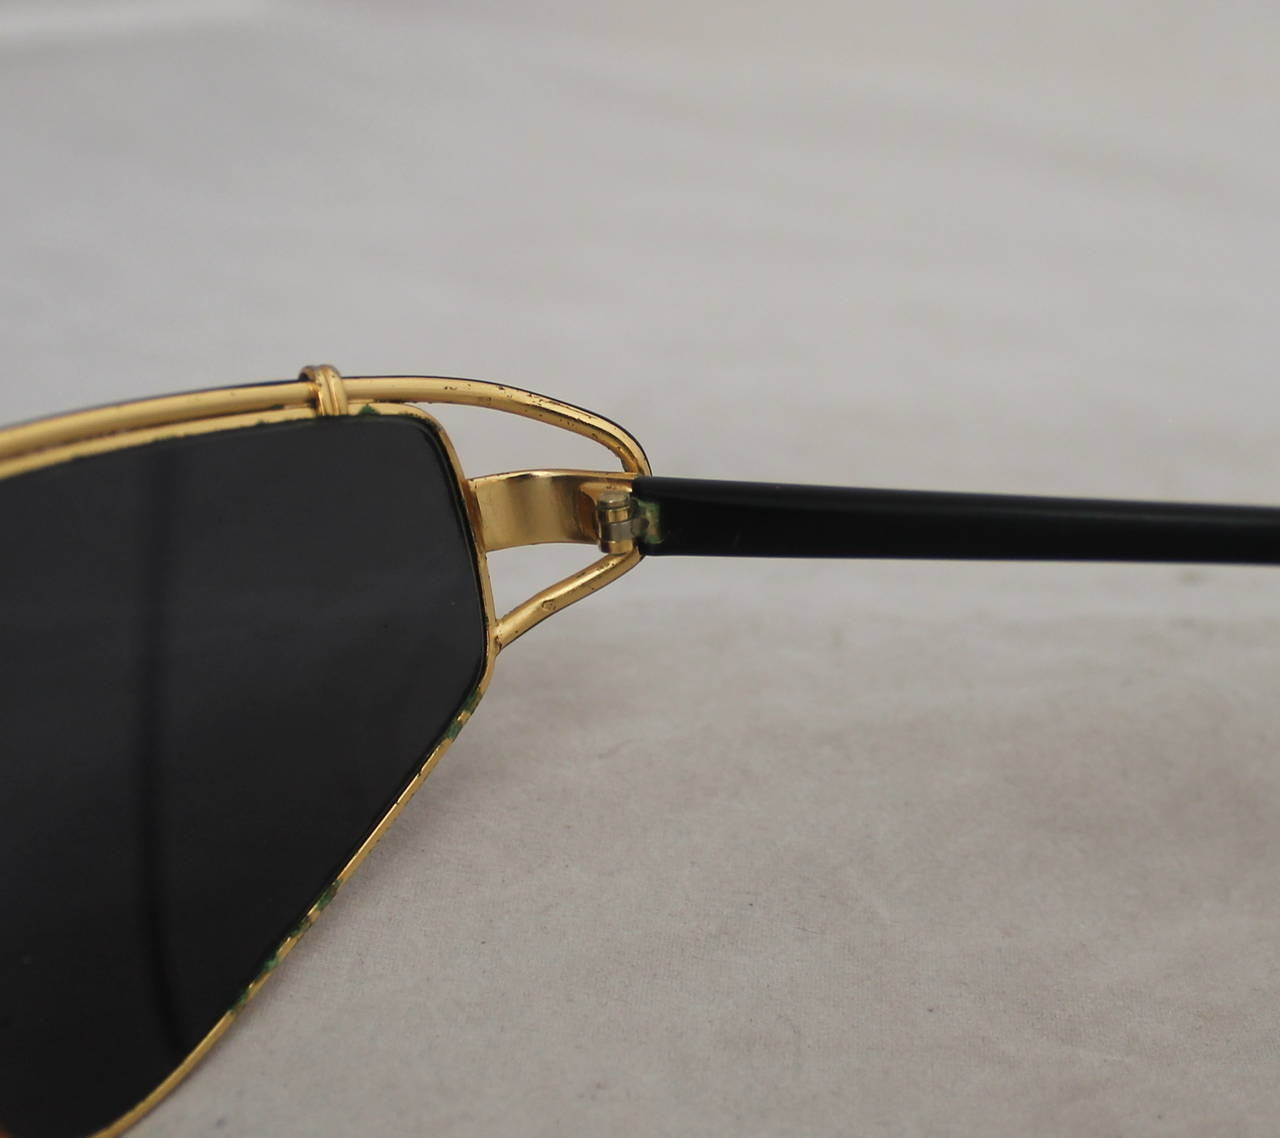 Versace 1980's Vintage Black & Gold Geometric Aviator Sunglasses For Sale 1